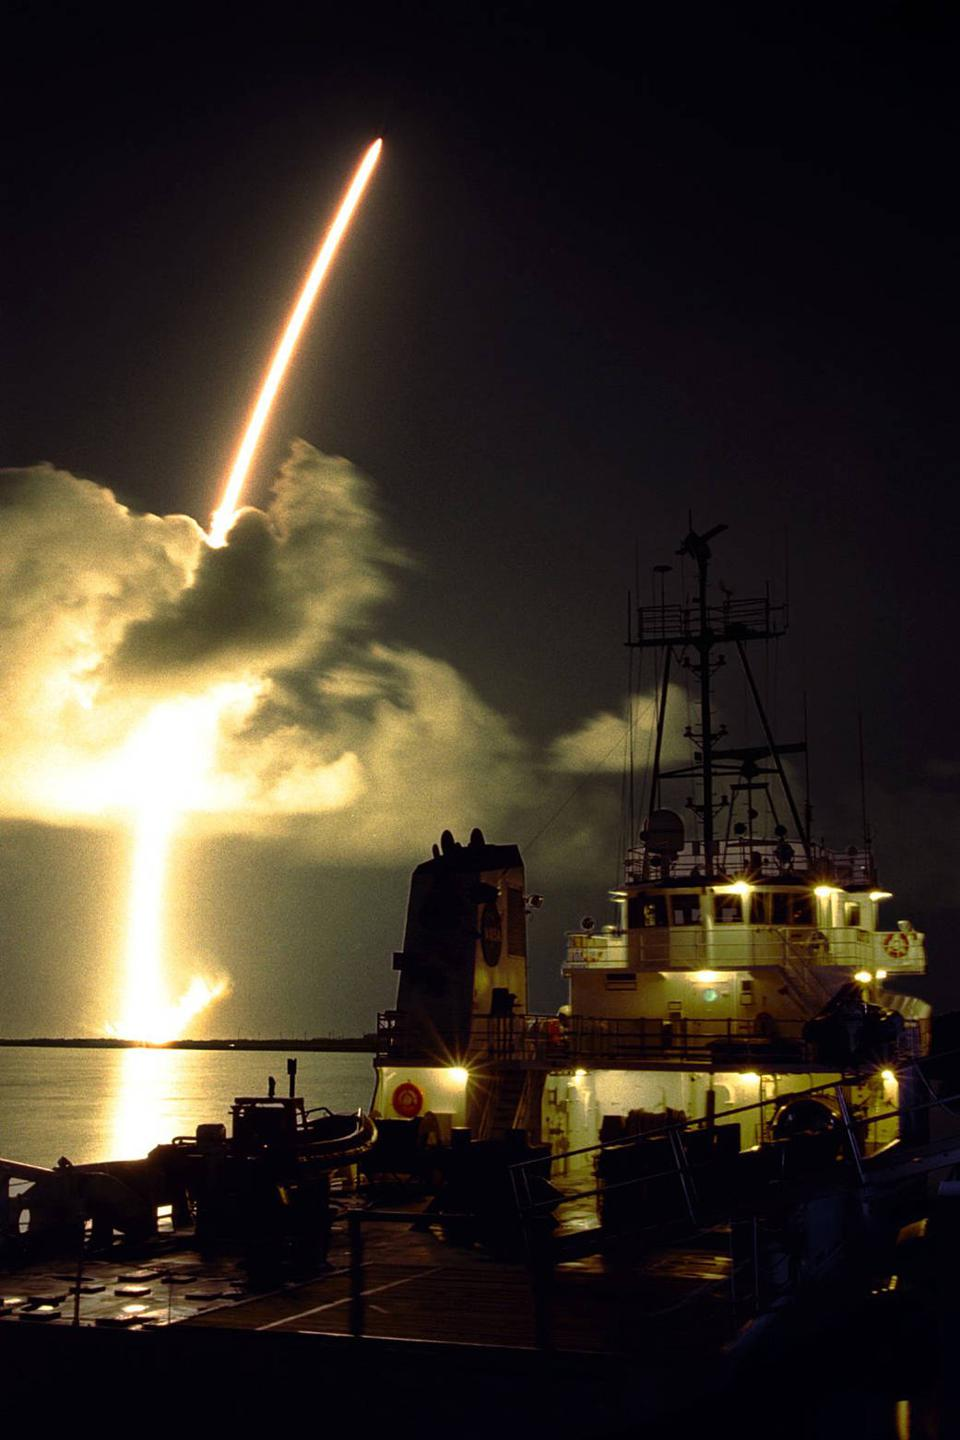 The launch of the rocket carrying NASA's Cassini mission, on October 15, 1997.